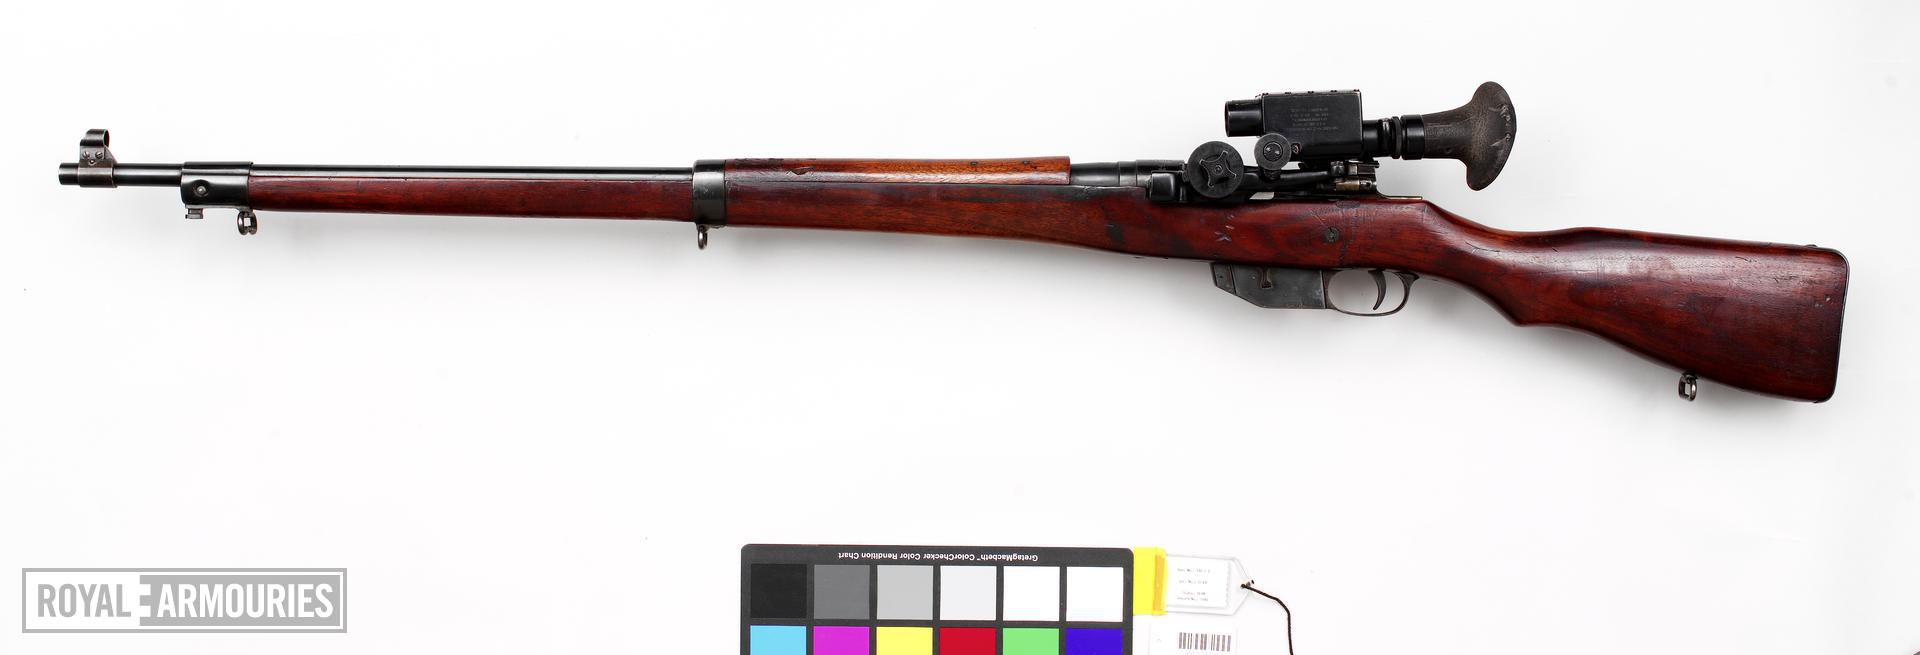 Ross Mark 3 sniper rifle with Warner and Swasey sight